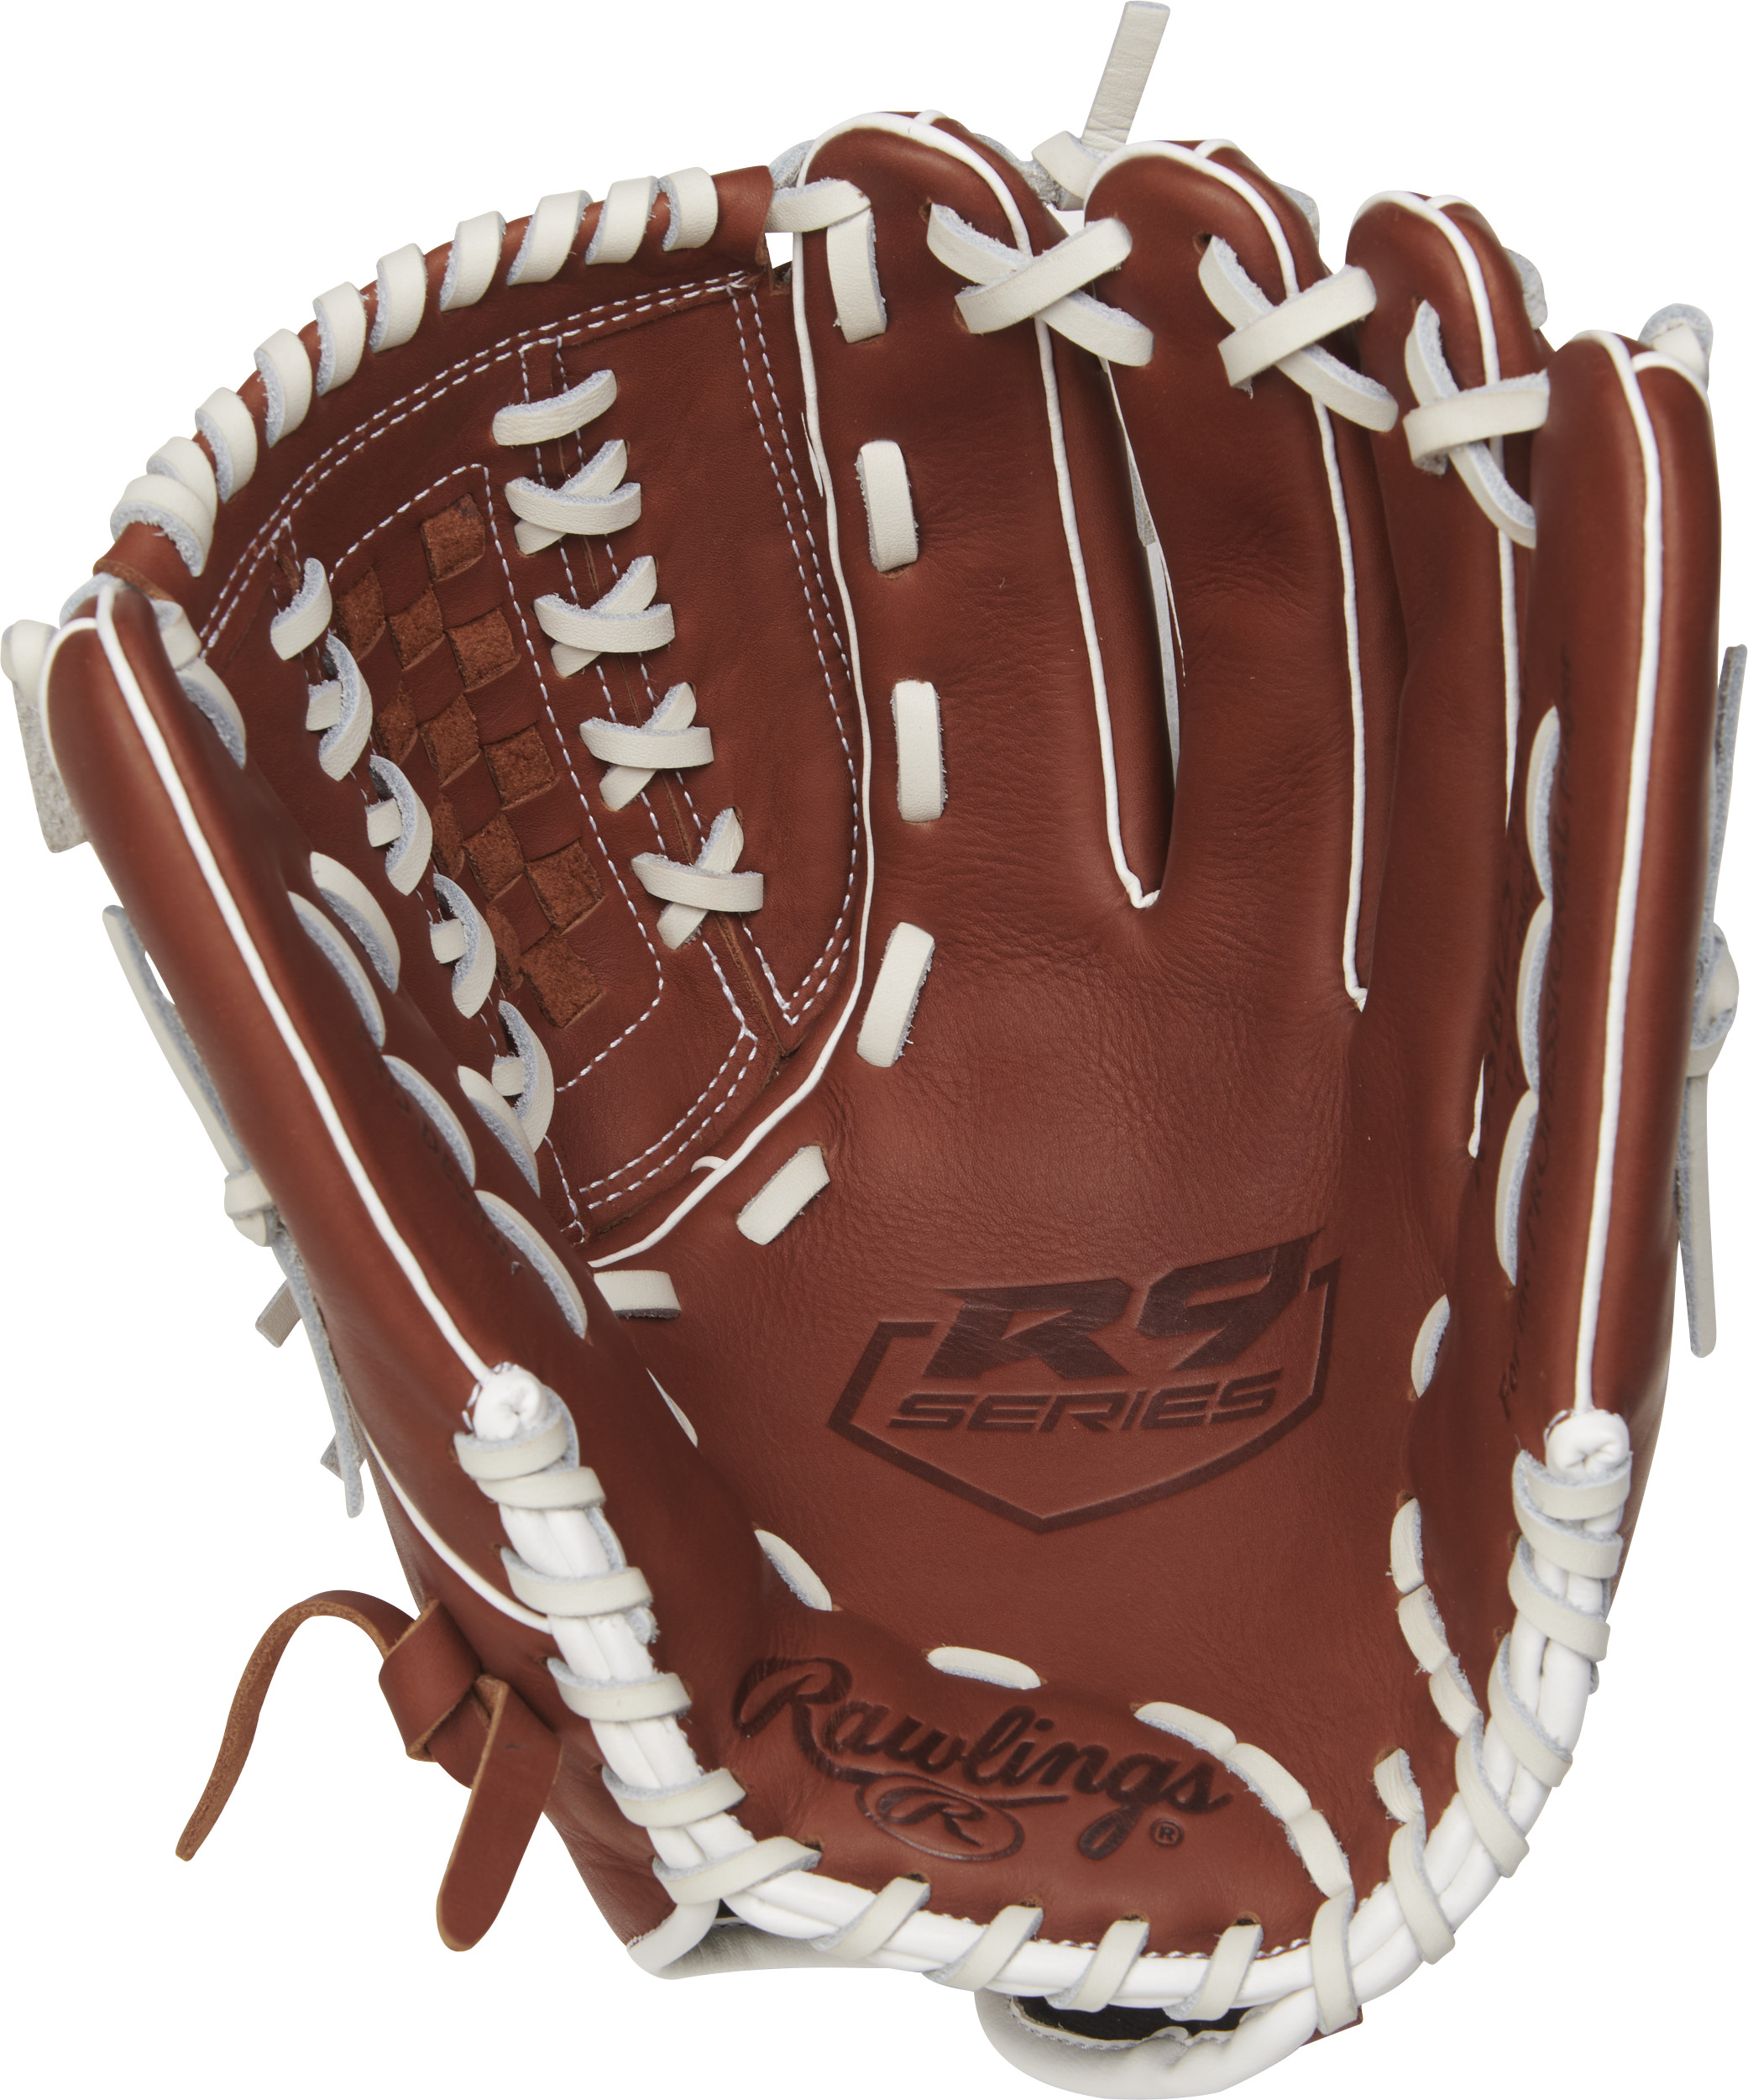 http://www.bestbatdeals.com/images/gloves/rawlings/R9SB125-18DB-1.jpg